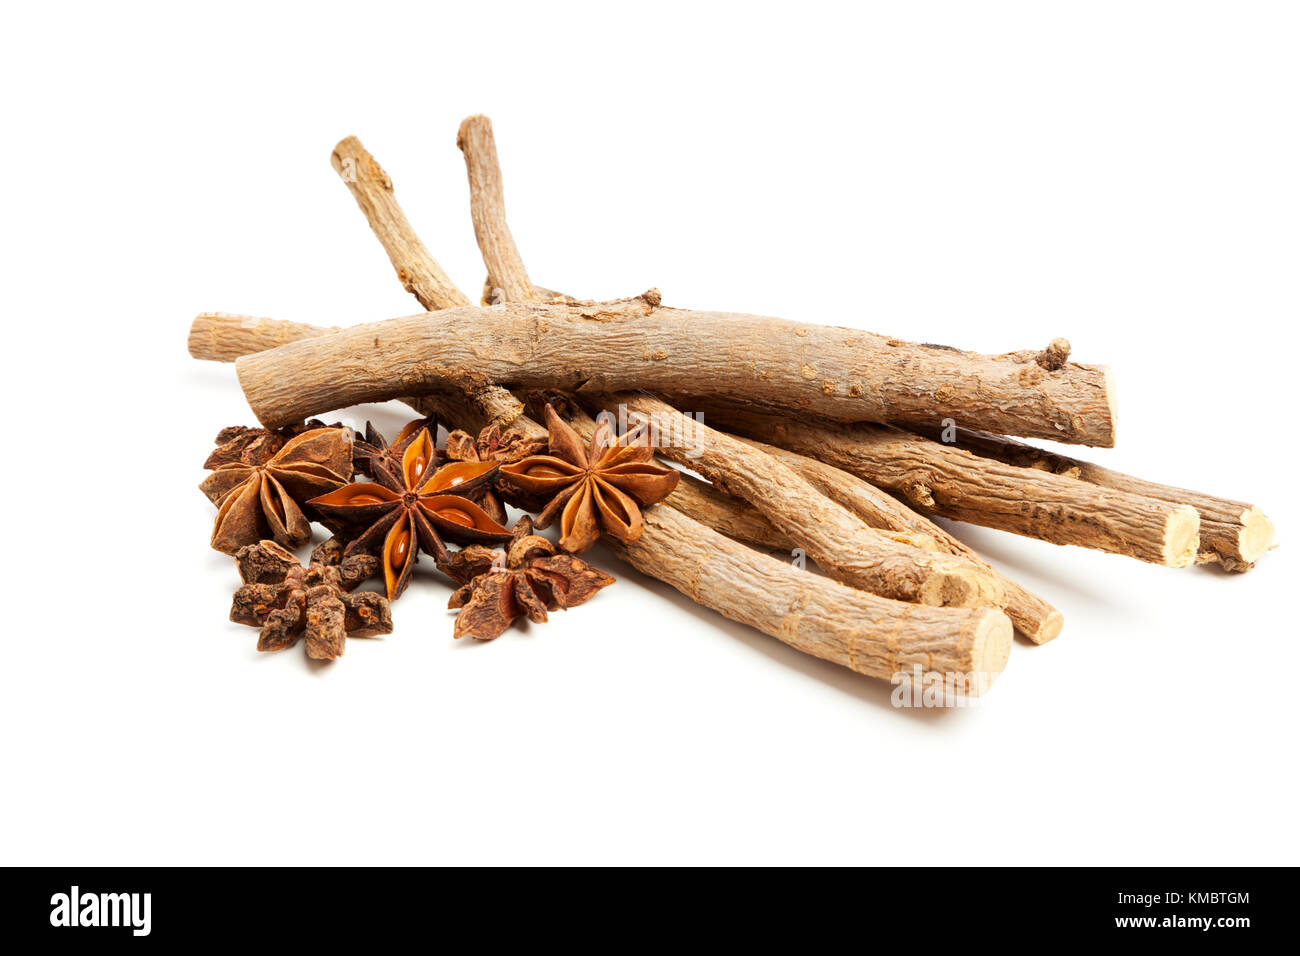 Licorice roots and star anise isolated on white background - Stock Image